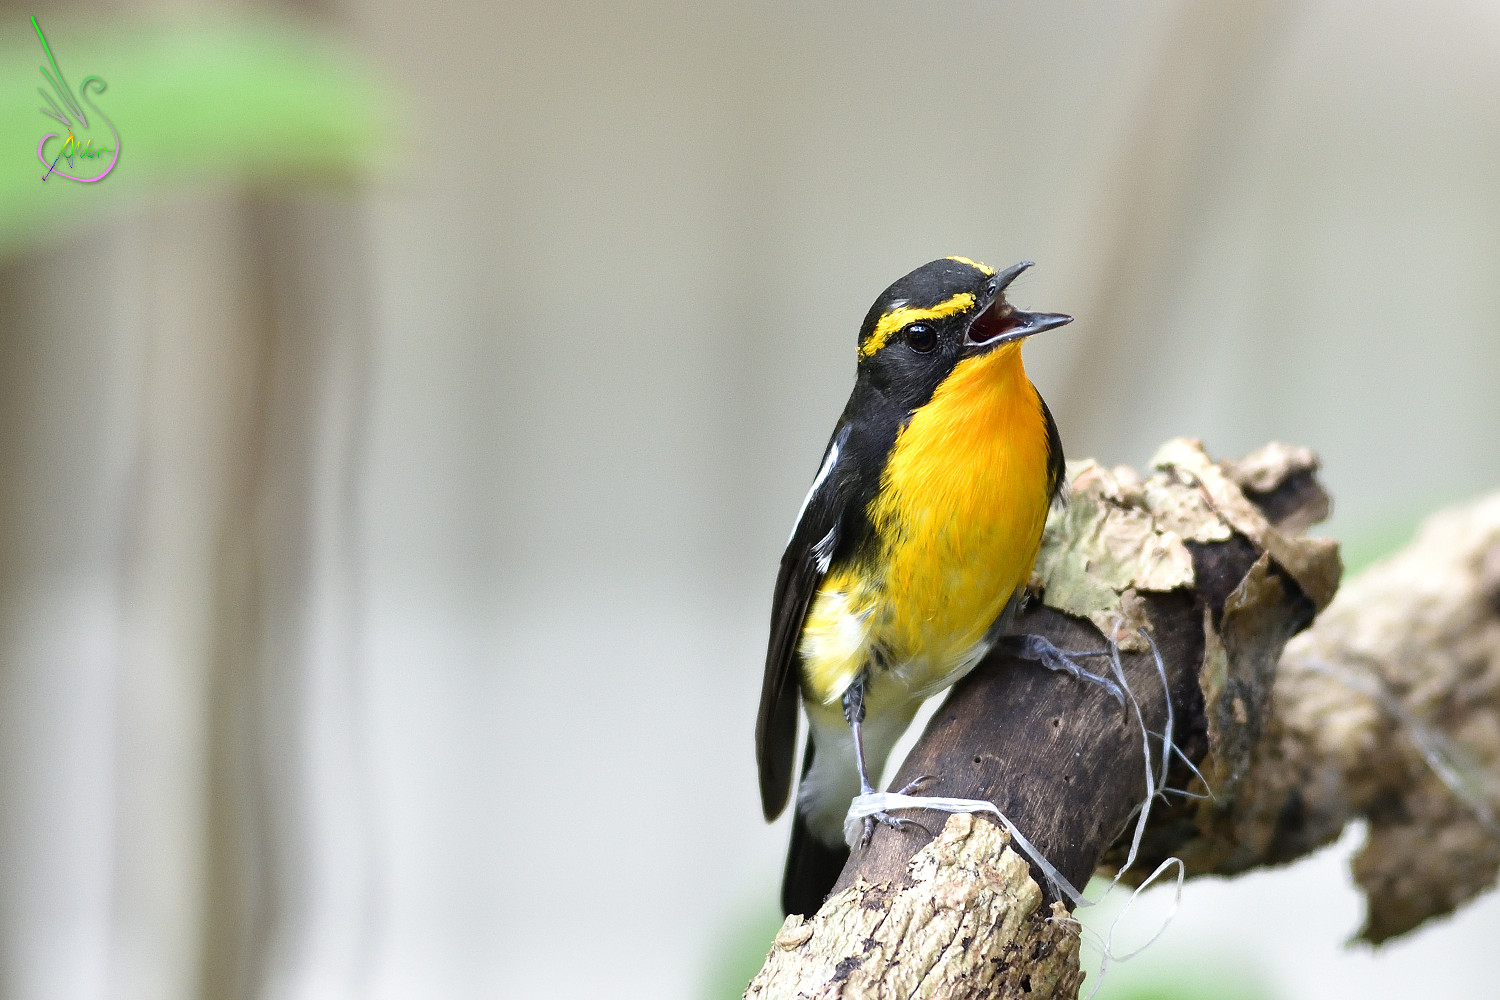 Narcissus_Flycatcher_8392